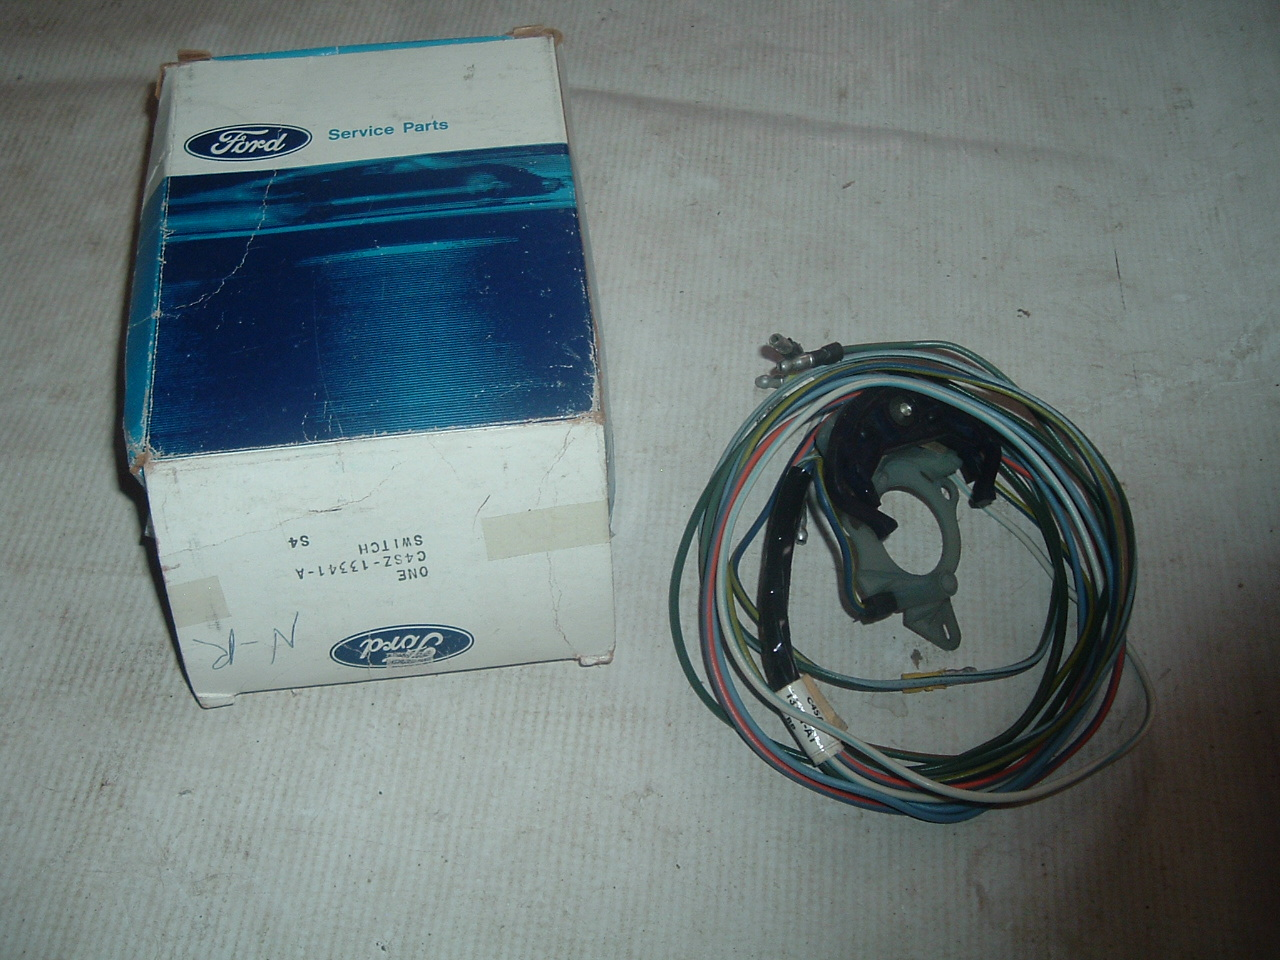 Turn Signal Flasher Switches 1960 Ford Ranchero Wiring Harness 1964 Thunderbird Switch Nos C4sz 13341 A